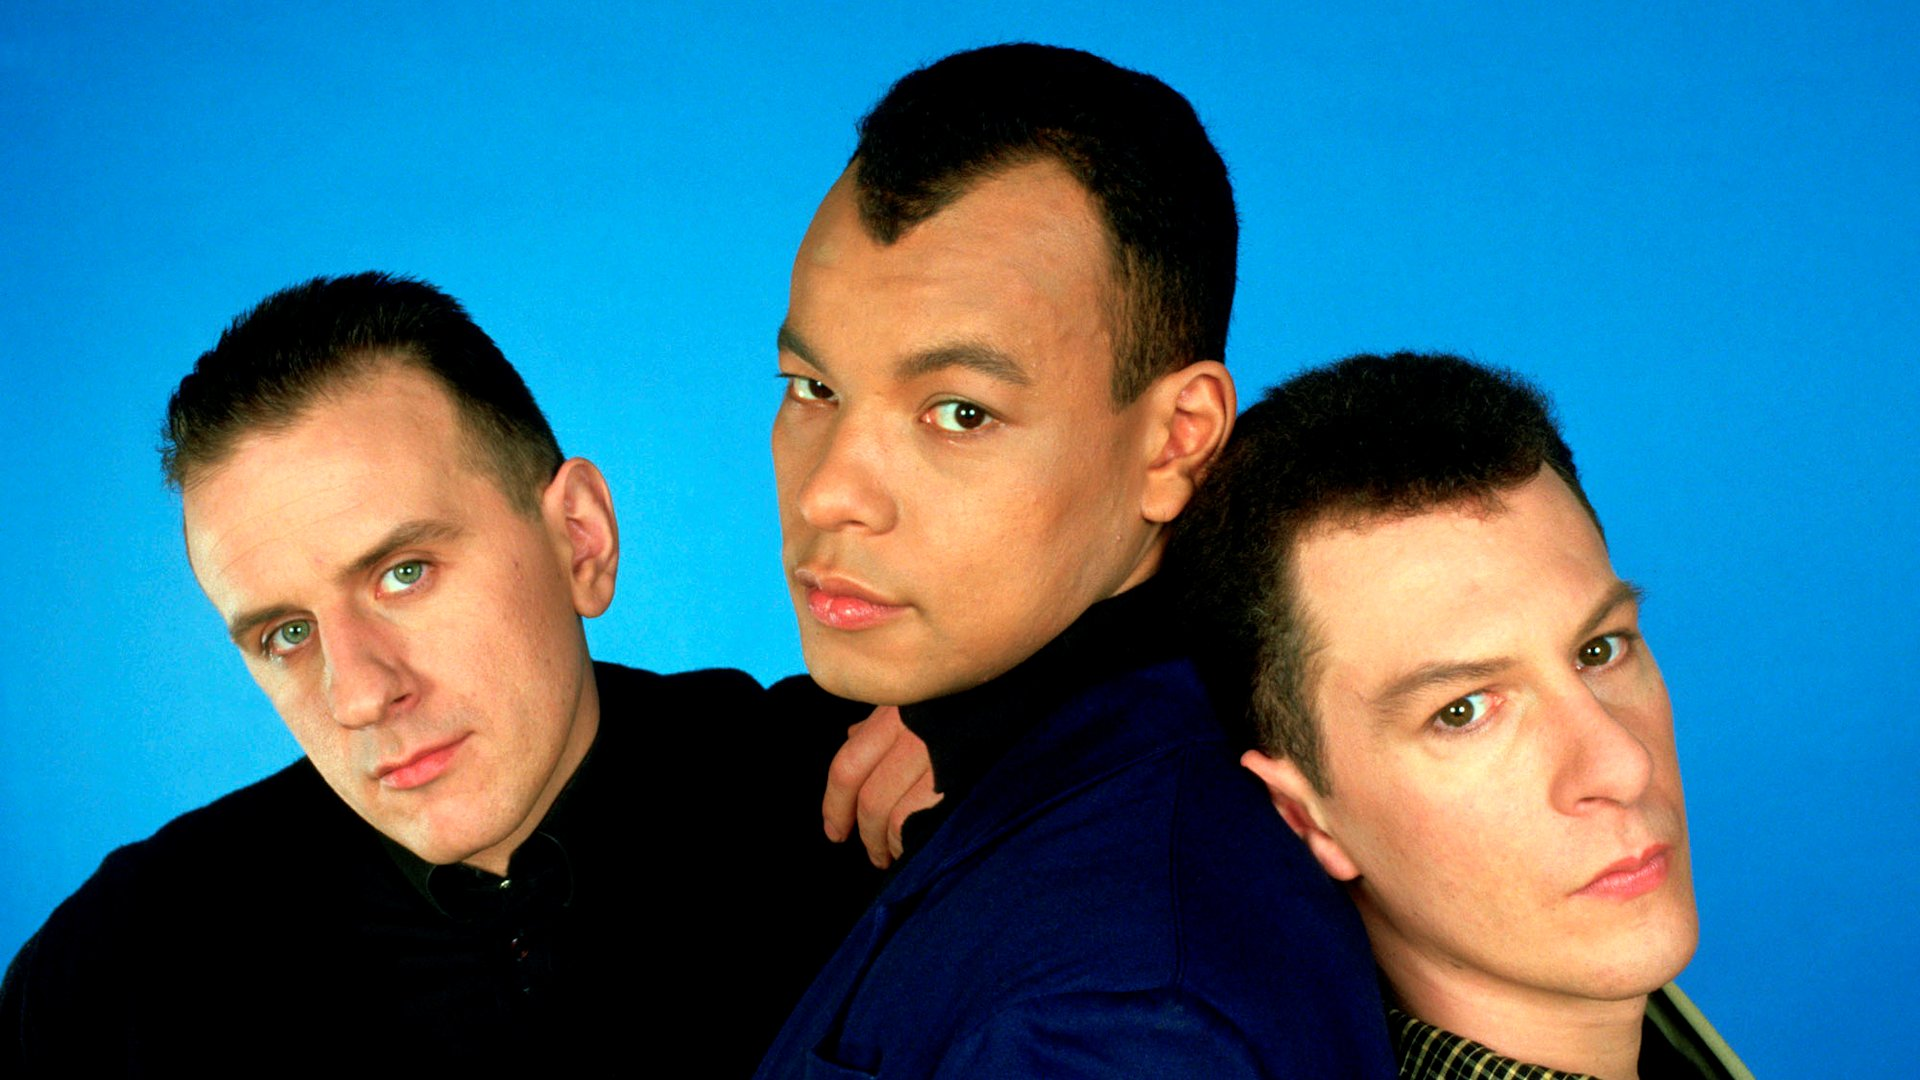 The Flame av Fine Young Cannibals